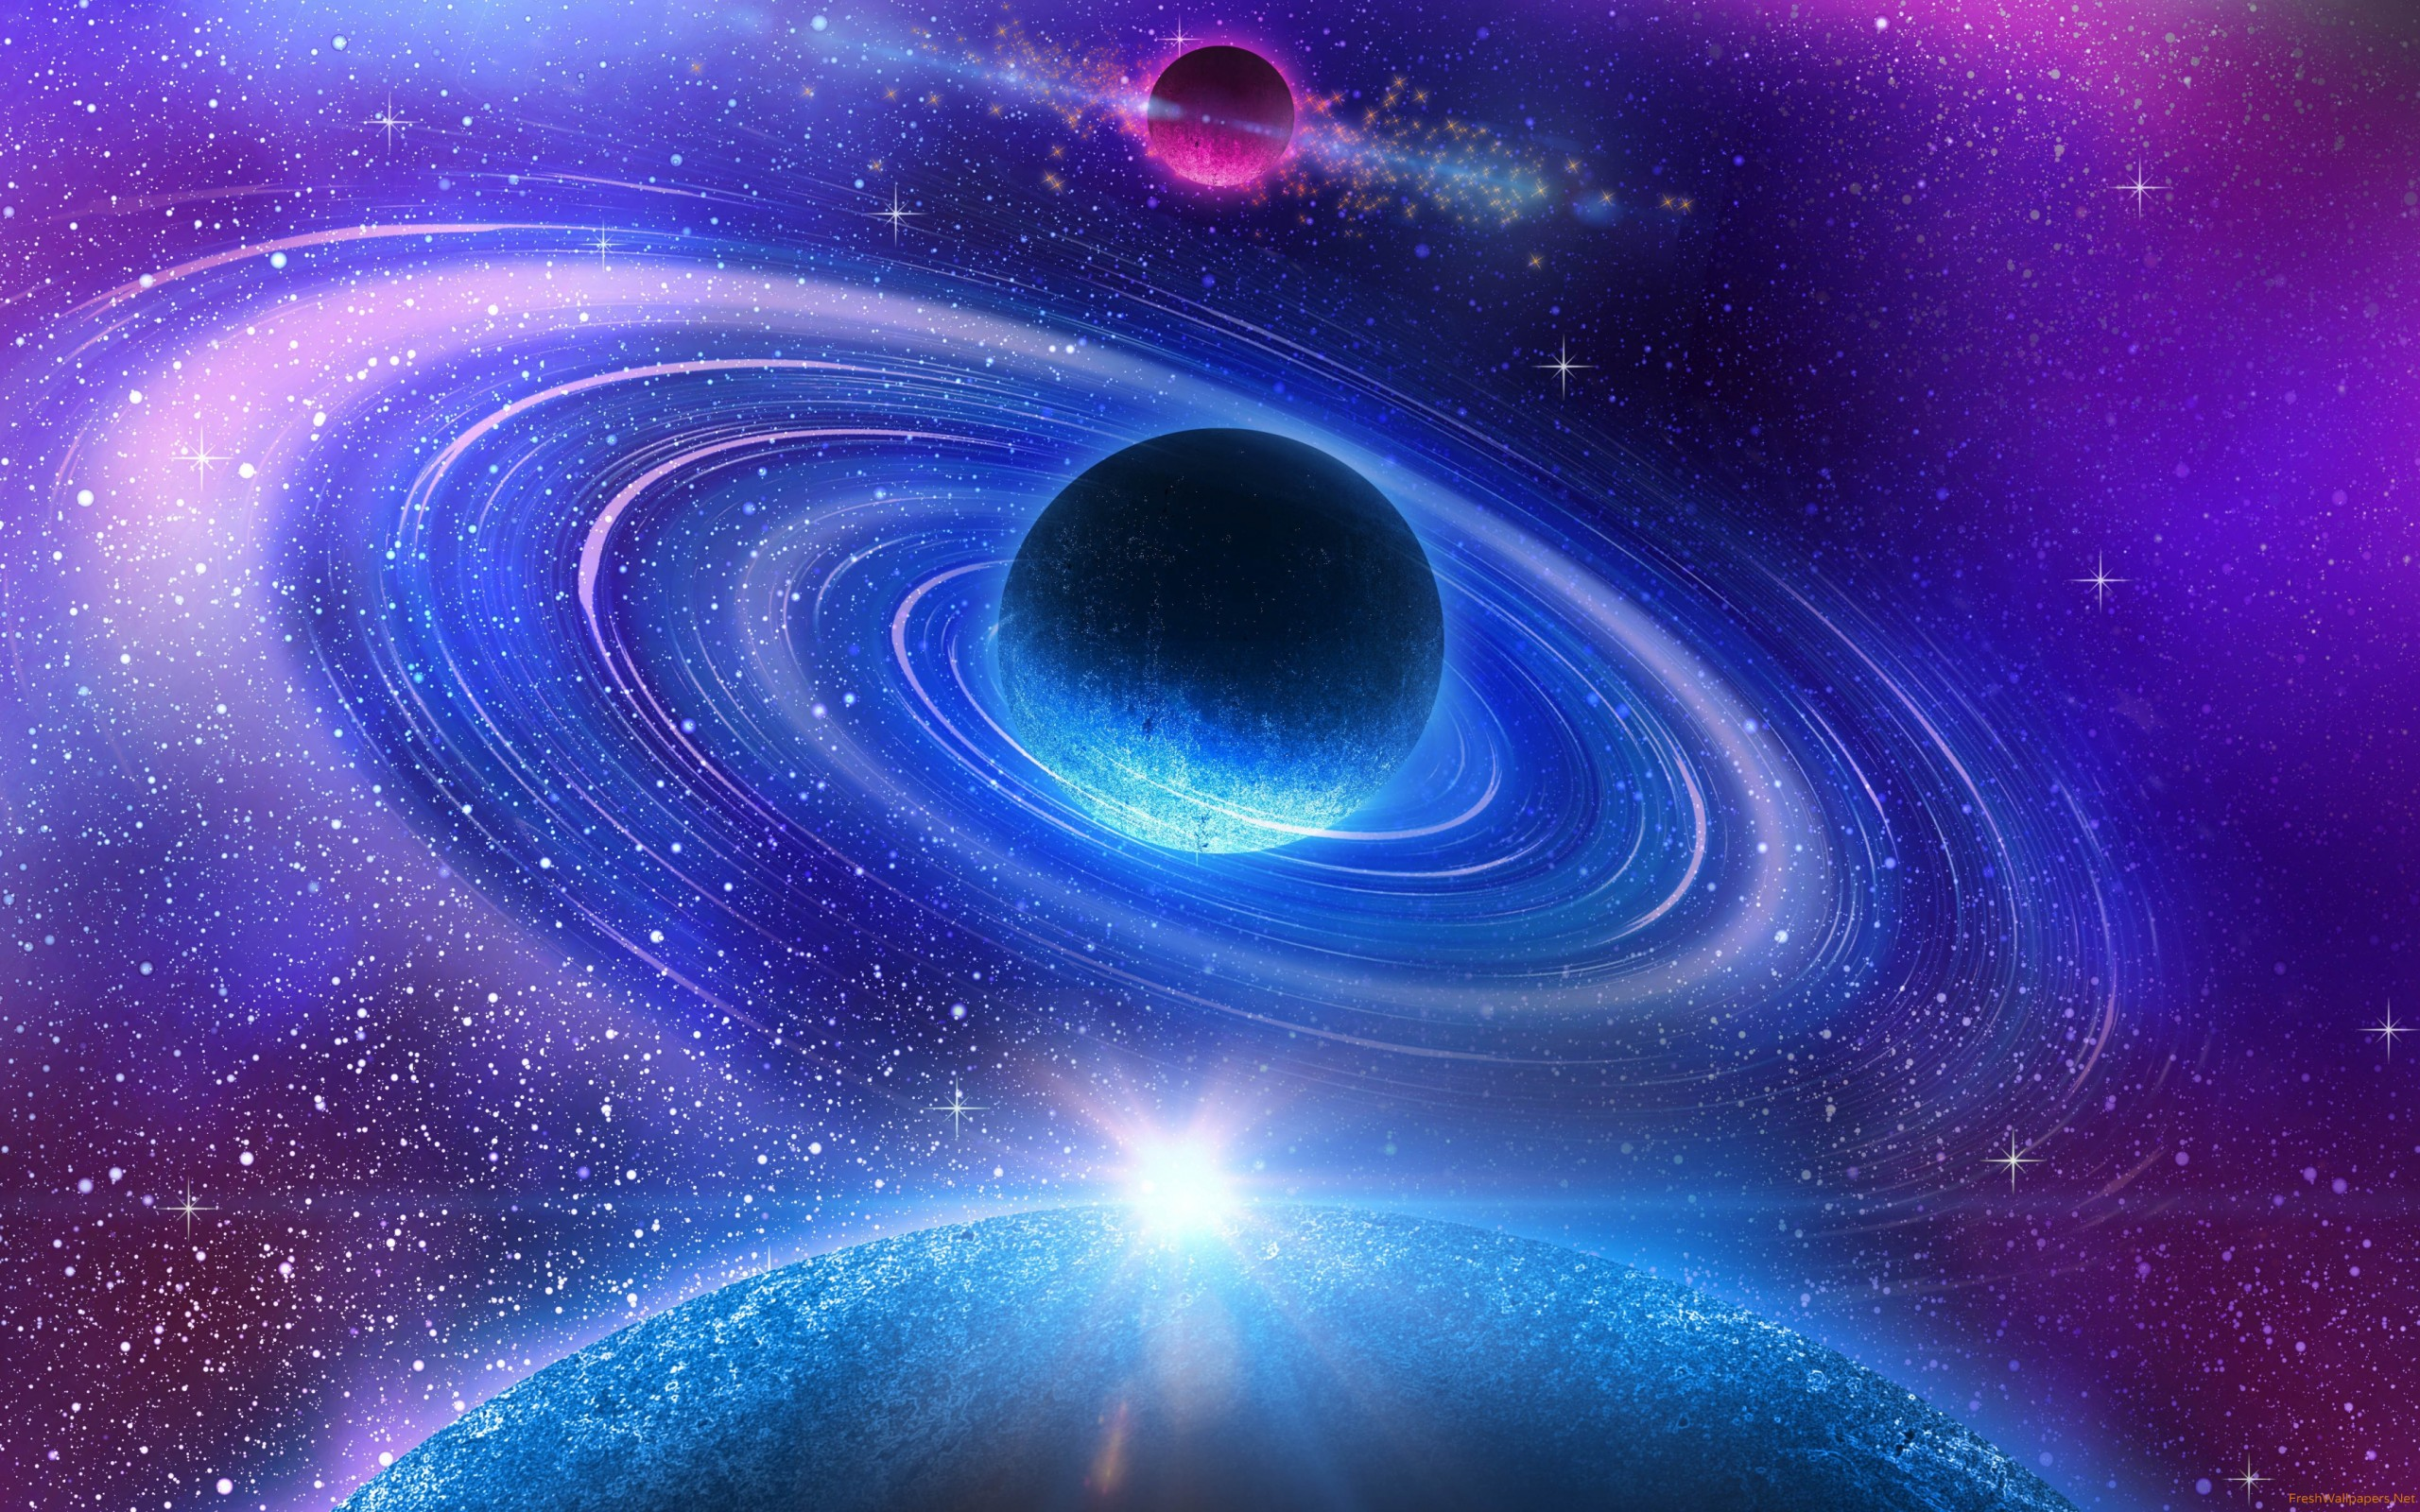 3d Space Background Wallpaper: Download Space 3D Wallpaper Gallery